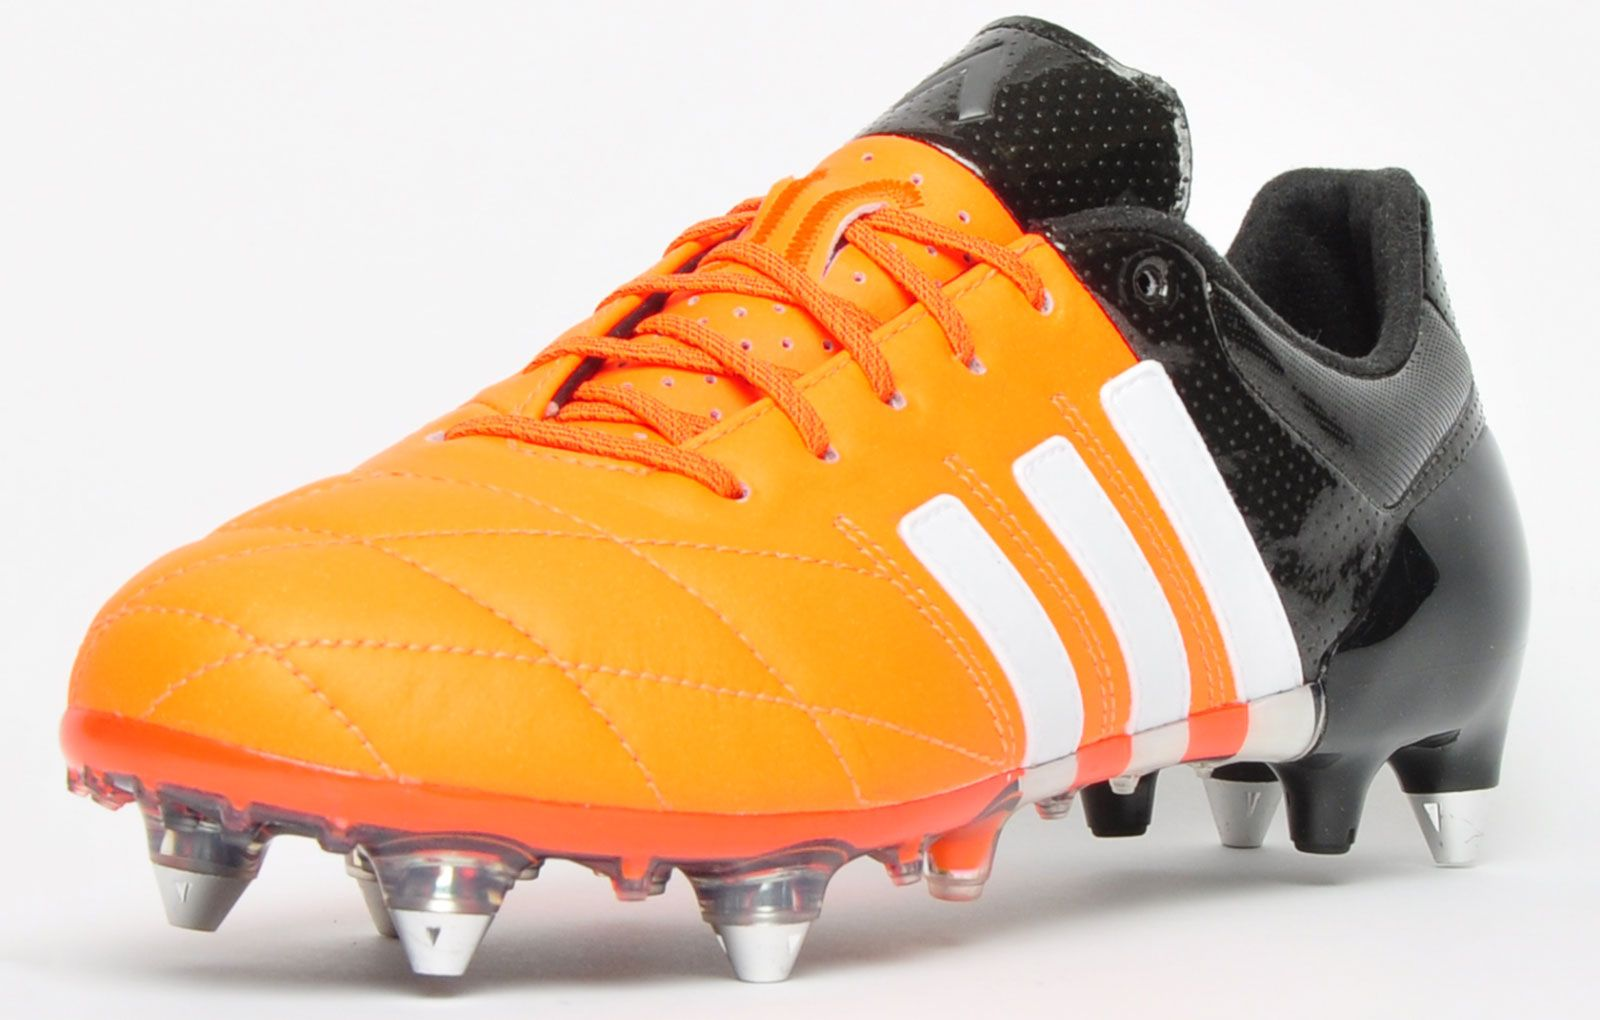 Adidas Ace 15.1 SG Leather Pro Mens